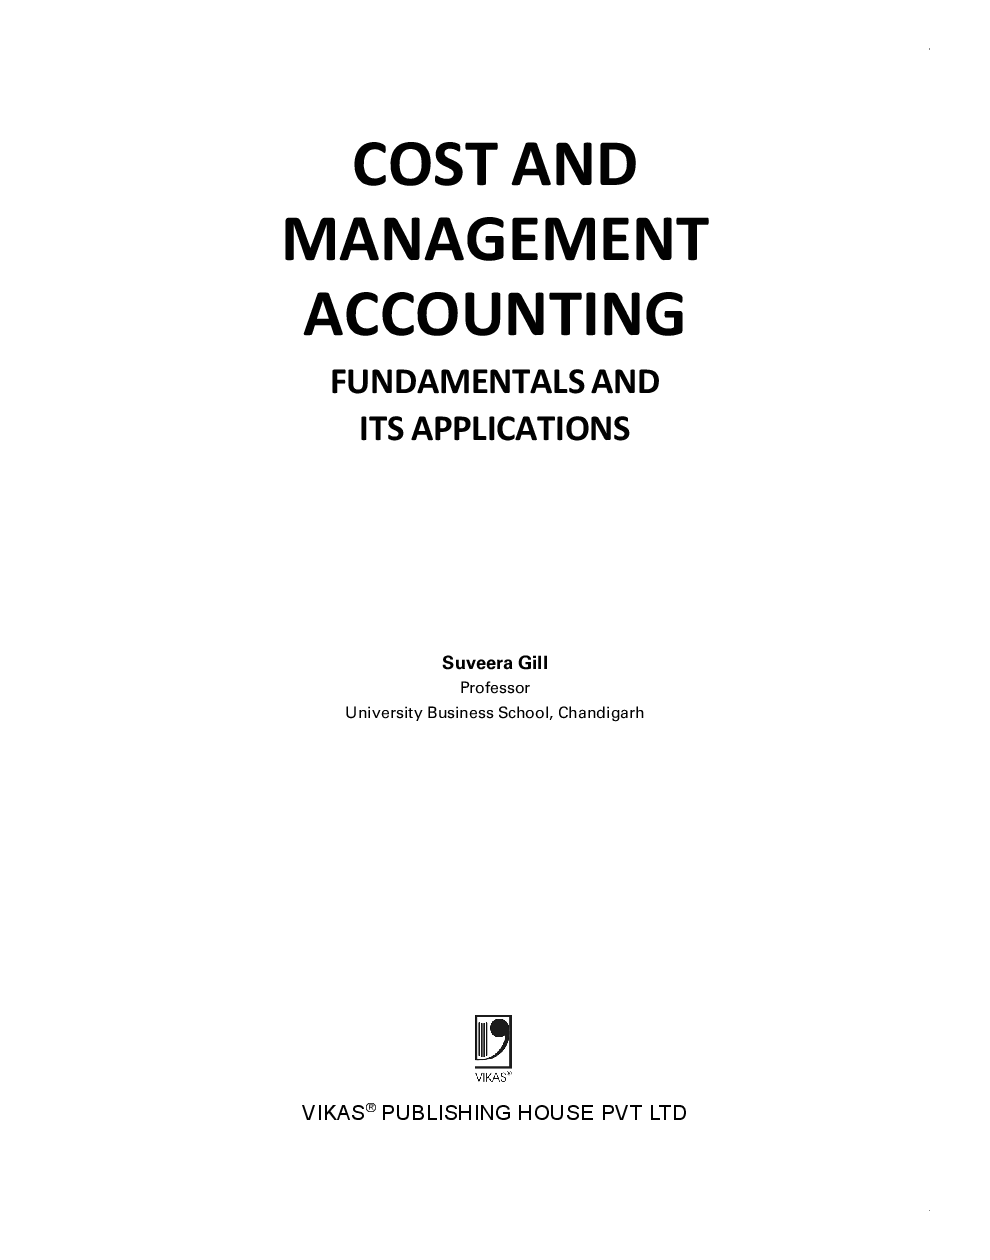 Download Cost And Management Accounting: Fundamentals And